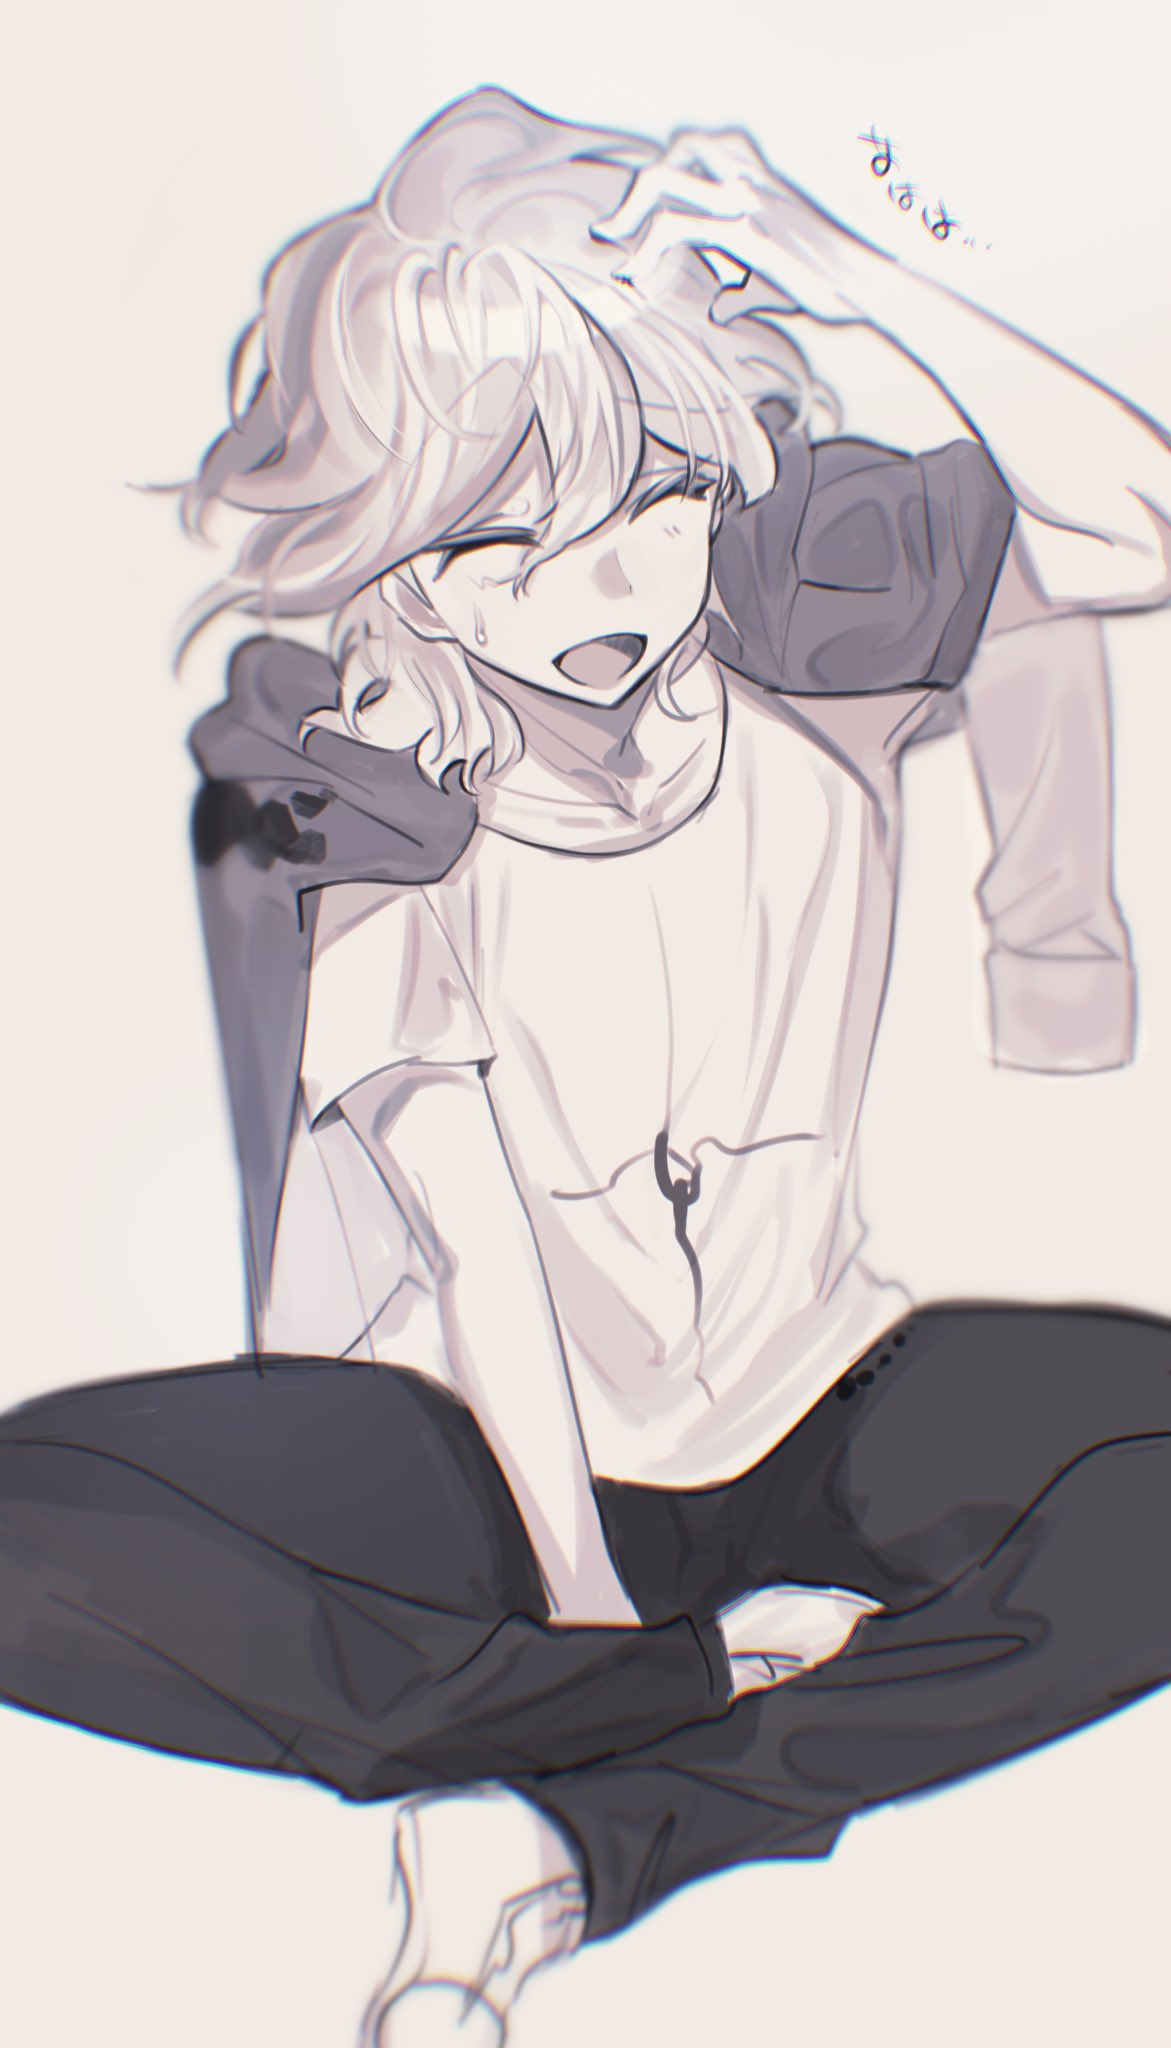 1boy bangs between_legs black_pants blue-bell closed_eyes collarbone danganronpa_(series) danganronpa_2:_goodbye_despair green_jacket grey_hair hand_between_legs hand_up highres indian_style jacket jacket_on_shoulders komaeda_nagito male_focus open_mouth pants print_shirt scratching_head shirt shoes short_hair short_sleeves simple_background sitting smile solo sweatdrop translation_request white_hair white_shirt